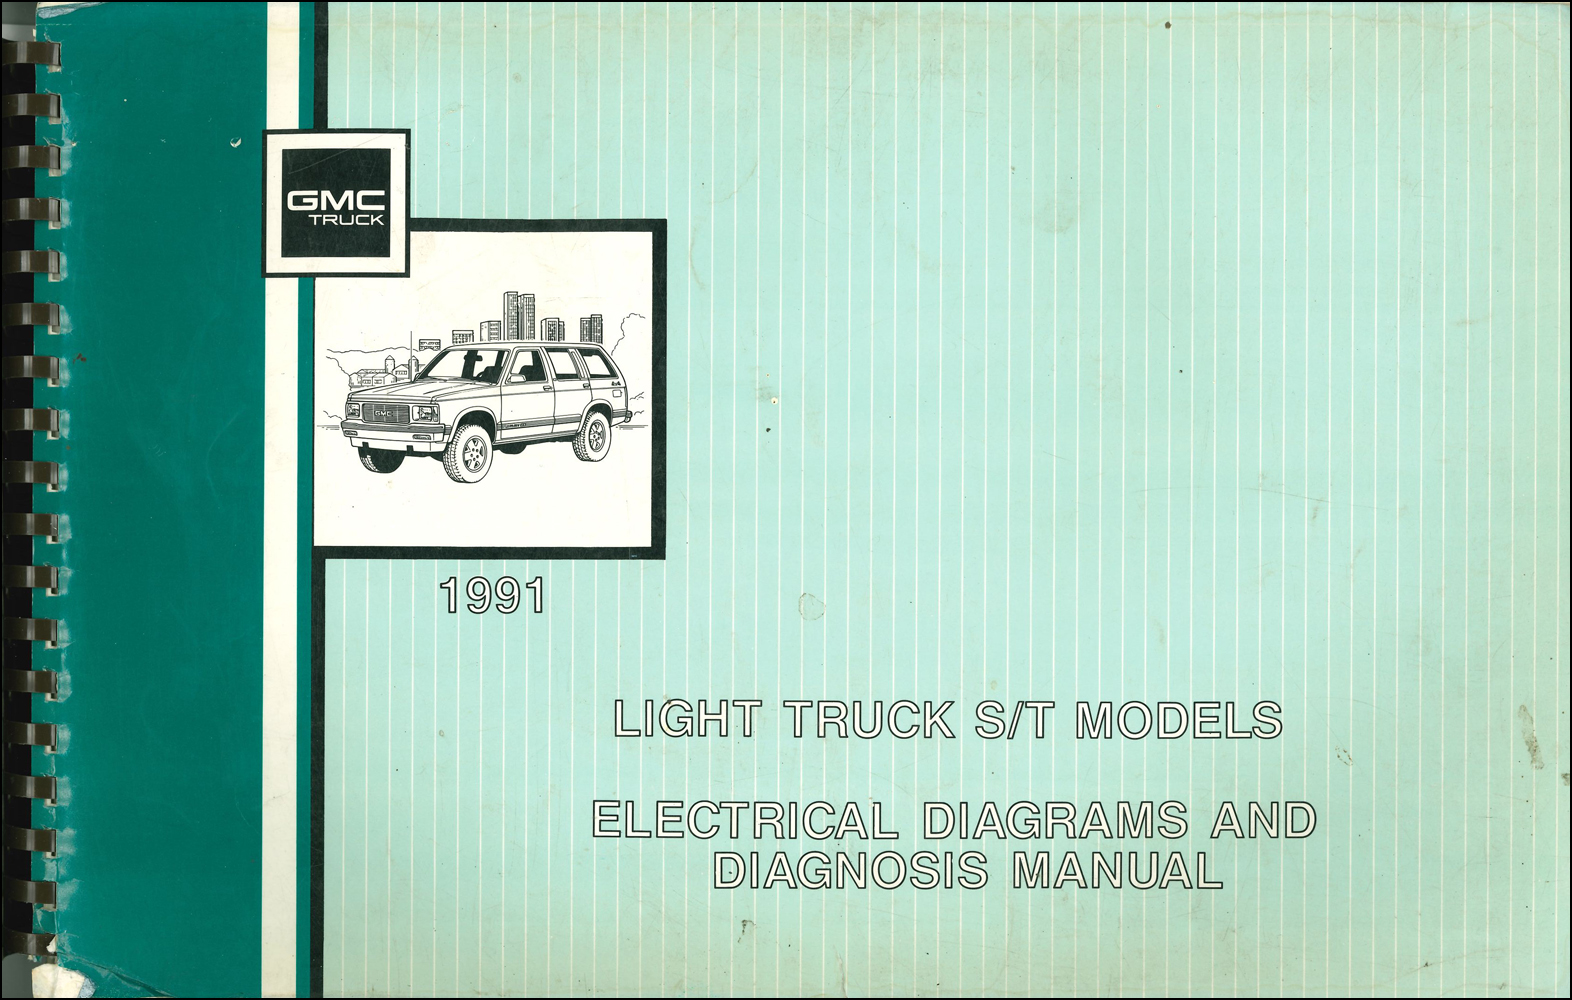 1991 GMC S15 Sonoma Pickup & Jimmy Wiring Diagram Manual Original Wiring Diagram Sonoma on engine diagrams, motor diagrams, honda motorcycle repair diagrams, electronic circuit diagrams, pinout diagrams, smart car diagrams, transformer diagrams, gmc fuse box diagrams, series and parallel circuits diagrams, battery diagrams, led circuit diagrams, sincgars radio configurations diagrams, switch diagrams, internet of things diagrams, troubleshooting diagrams, lighting diagrams, hvac diagrams, electrical diagrams, friendship bracelet diagrams,